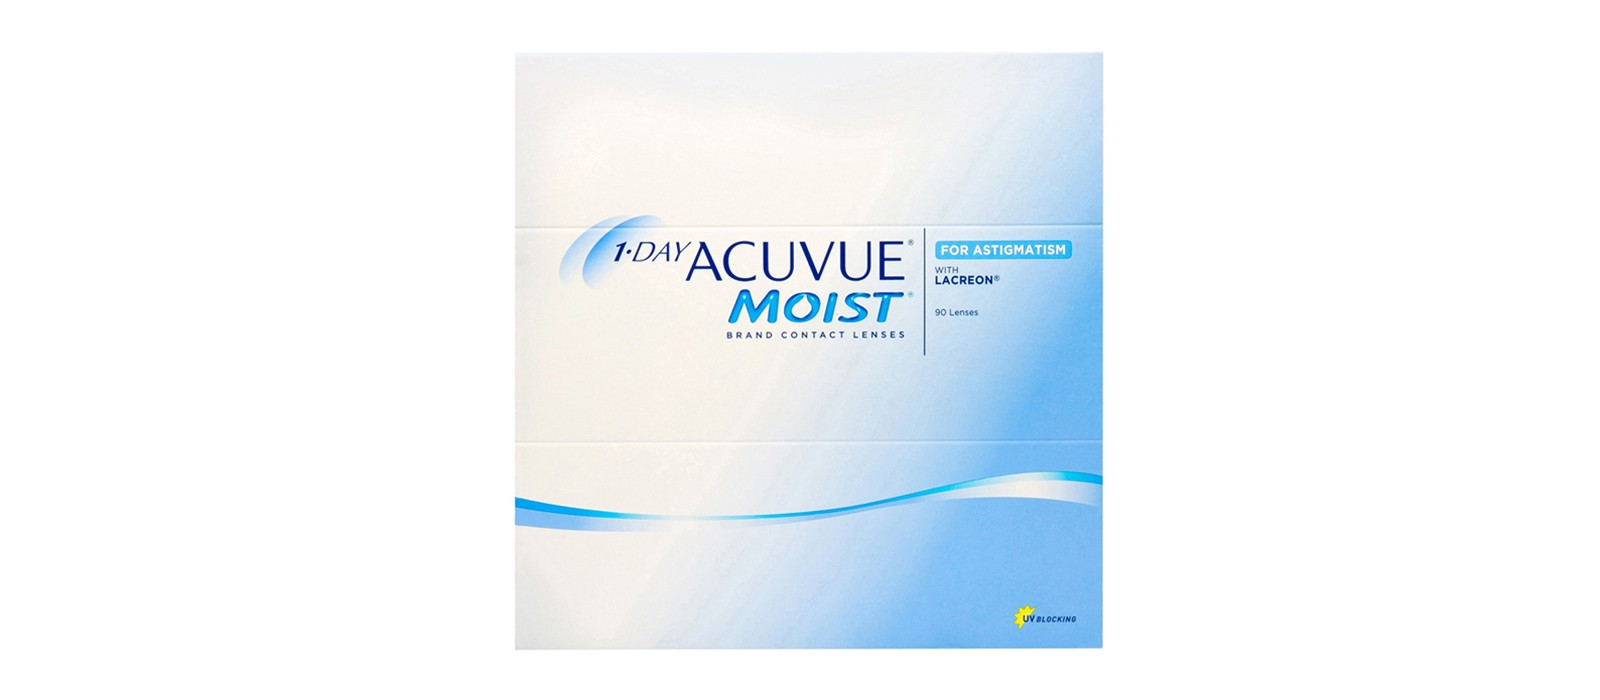 1-Day ACUVUE Moist for Astigmatism, Johnson & Johnson (90 Stk.)